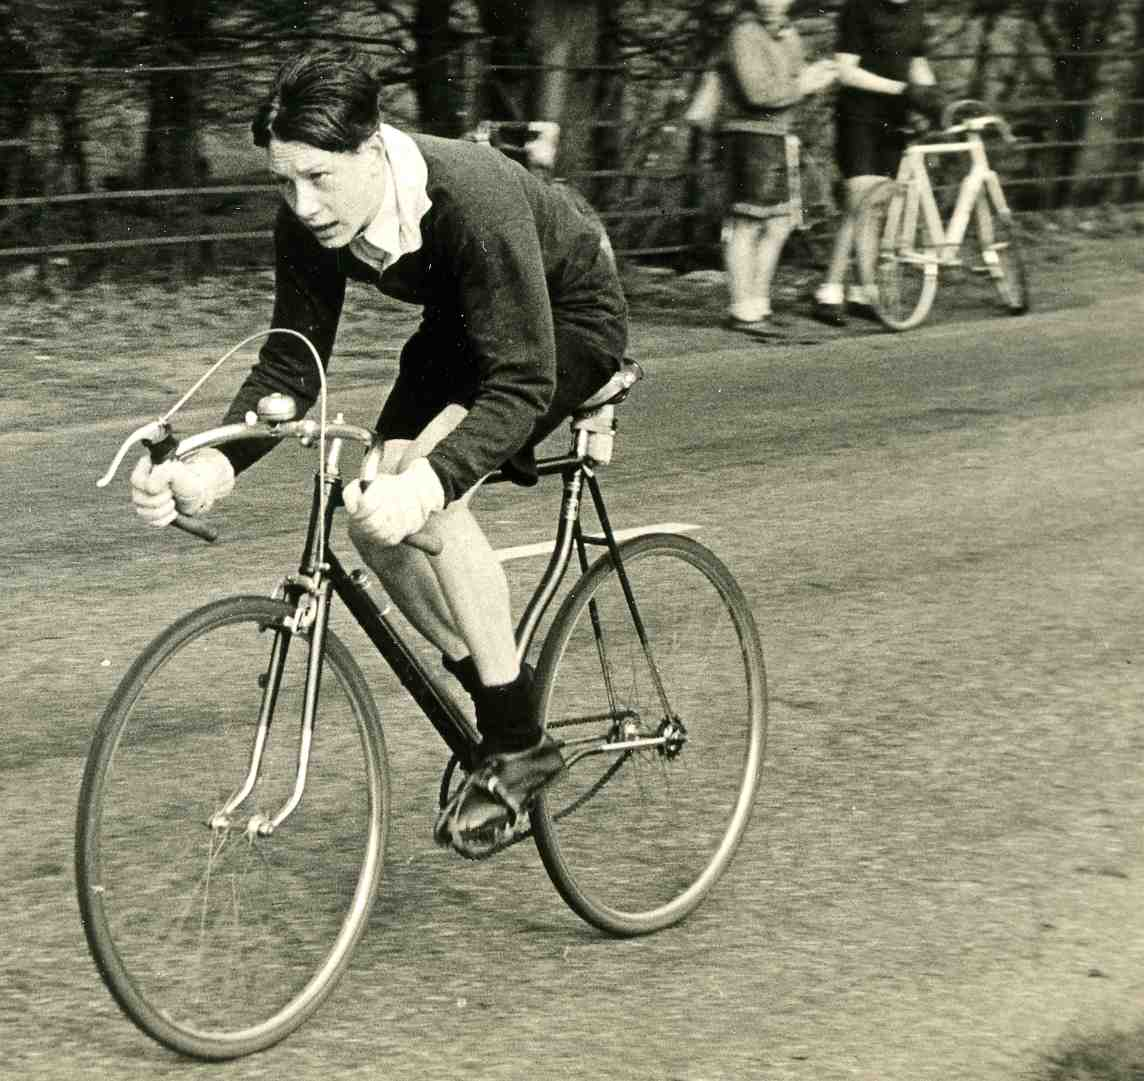 A young member of the Northwood Wheelers